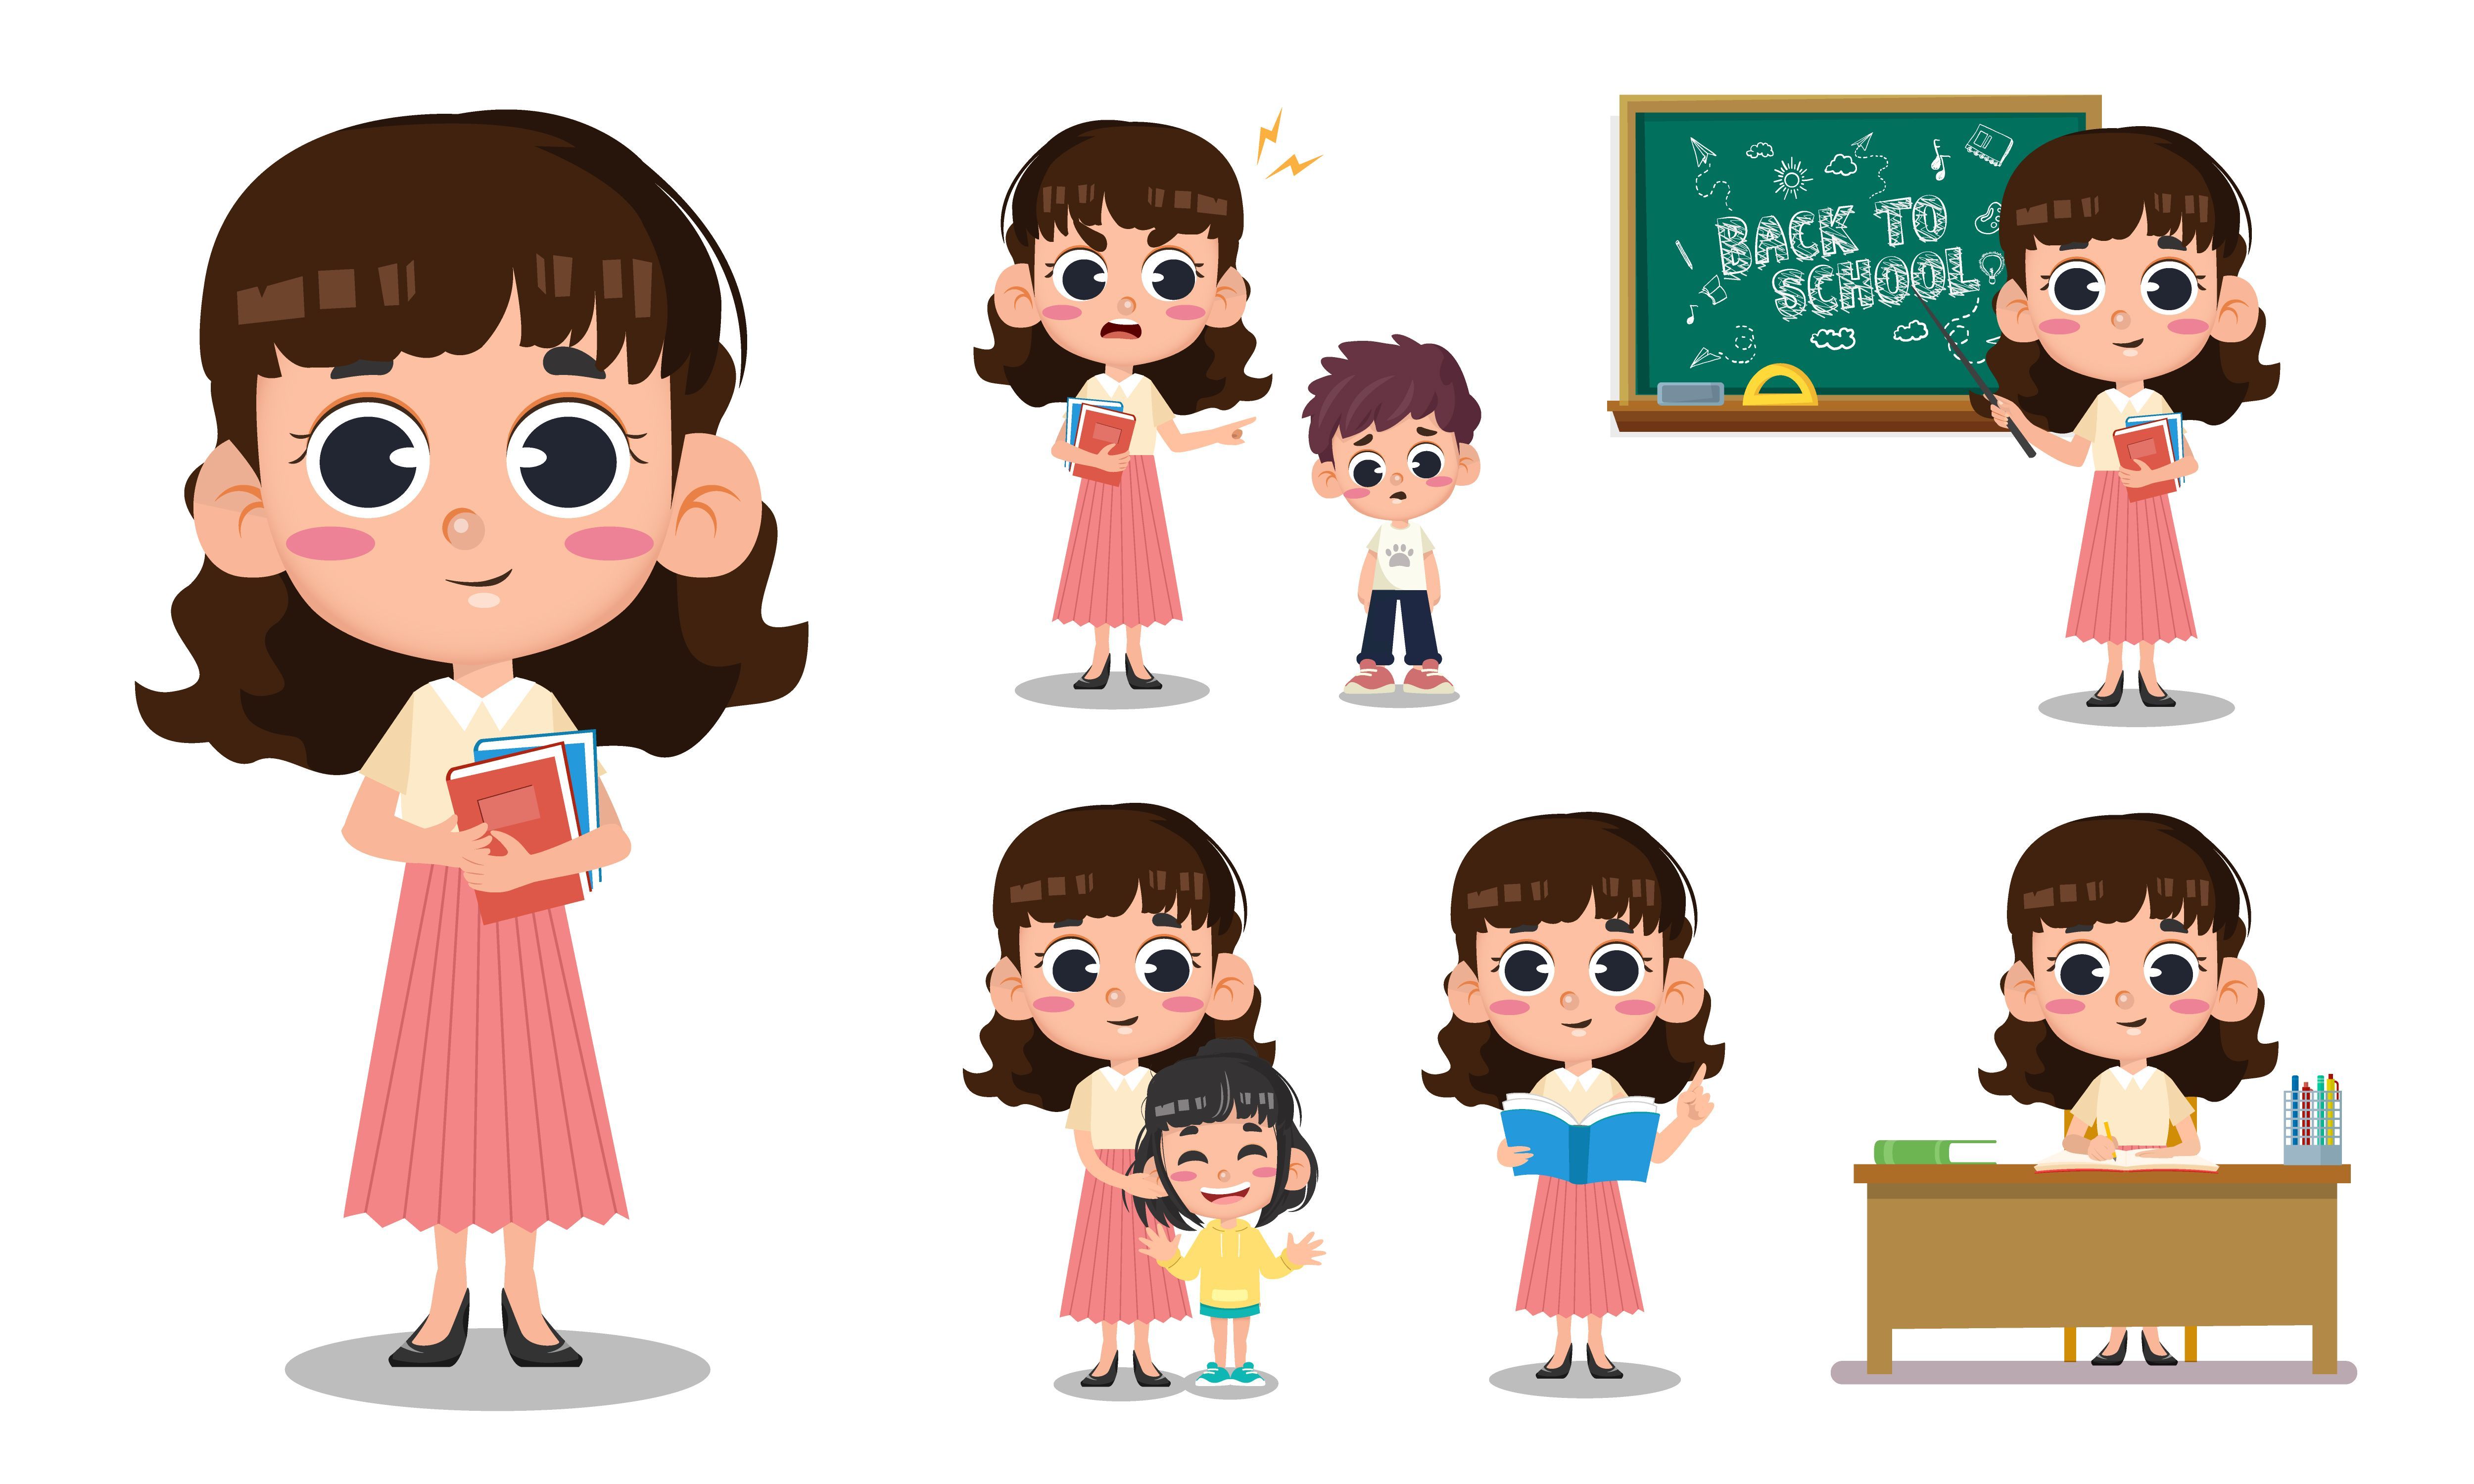 Teacher Teaching Concept Design Teacher Clipart Cartoon People Png And Vector With Transparent Background For Free Download Concept Design Character Design Banner Design